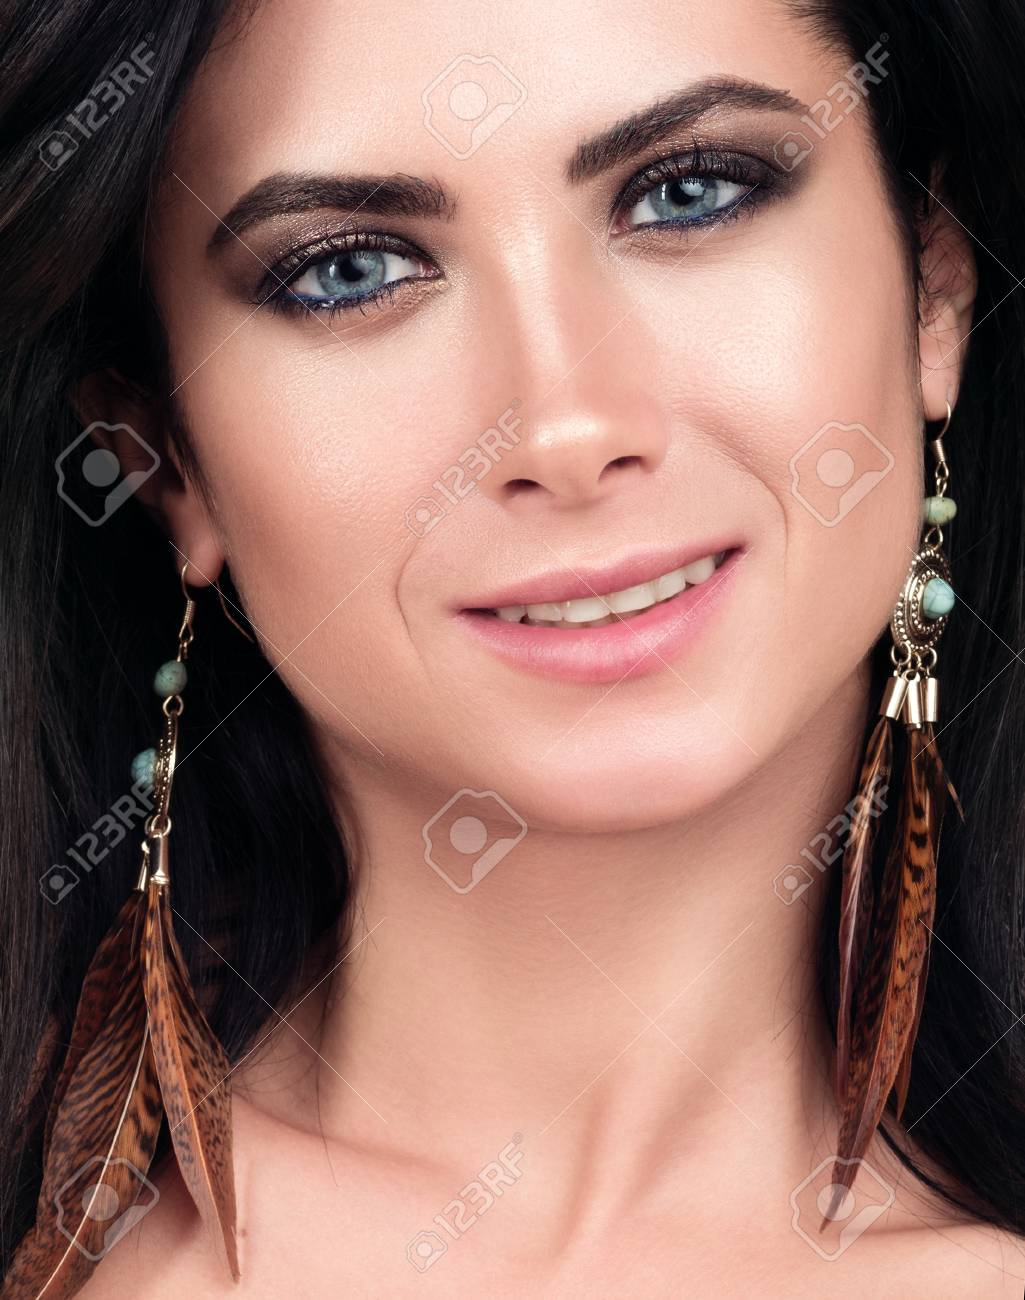 Closeup Portrait Of Young Beautiful Woman Dark Hair Blue Eyes